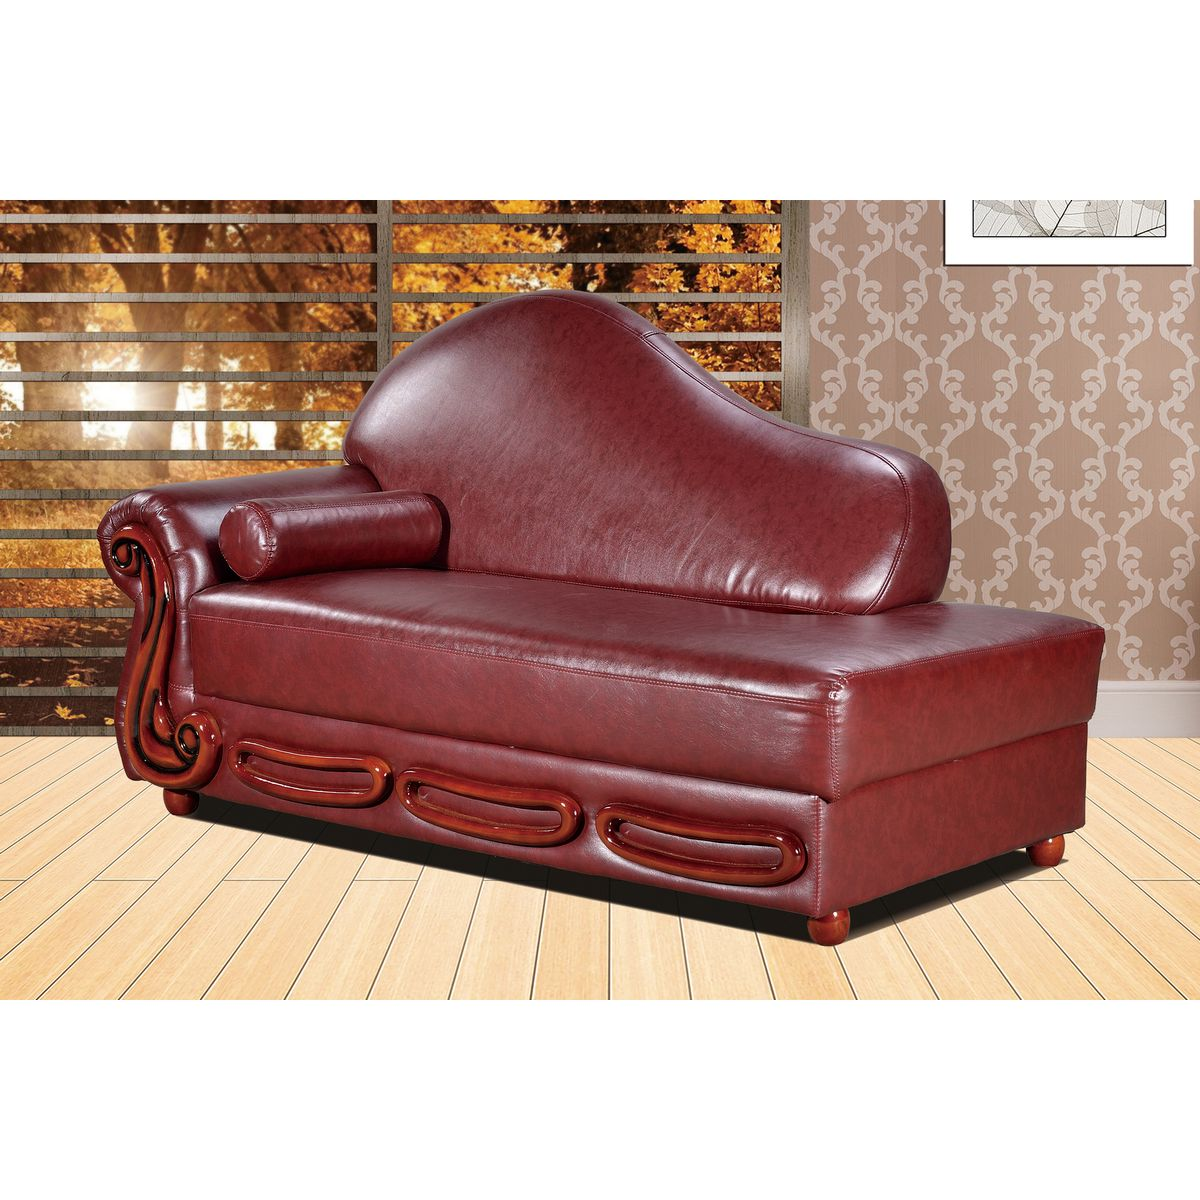 Meridian furniture 632burg ch bella burgundy leather for Burgundy leather chaise